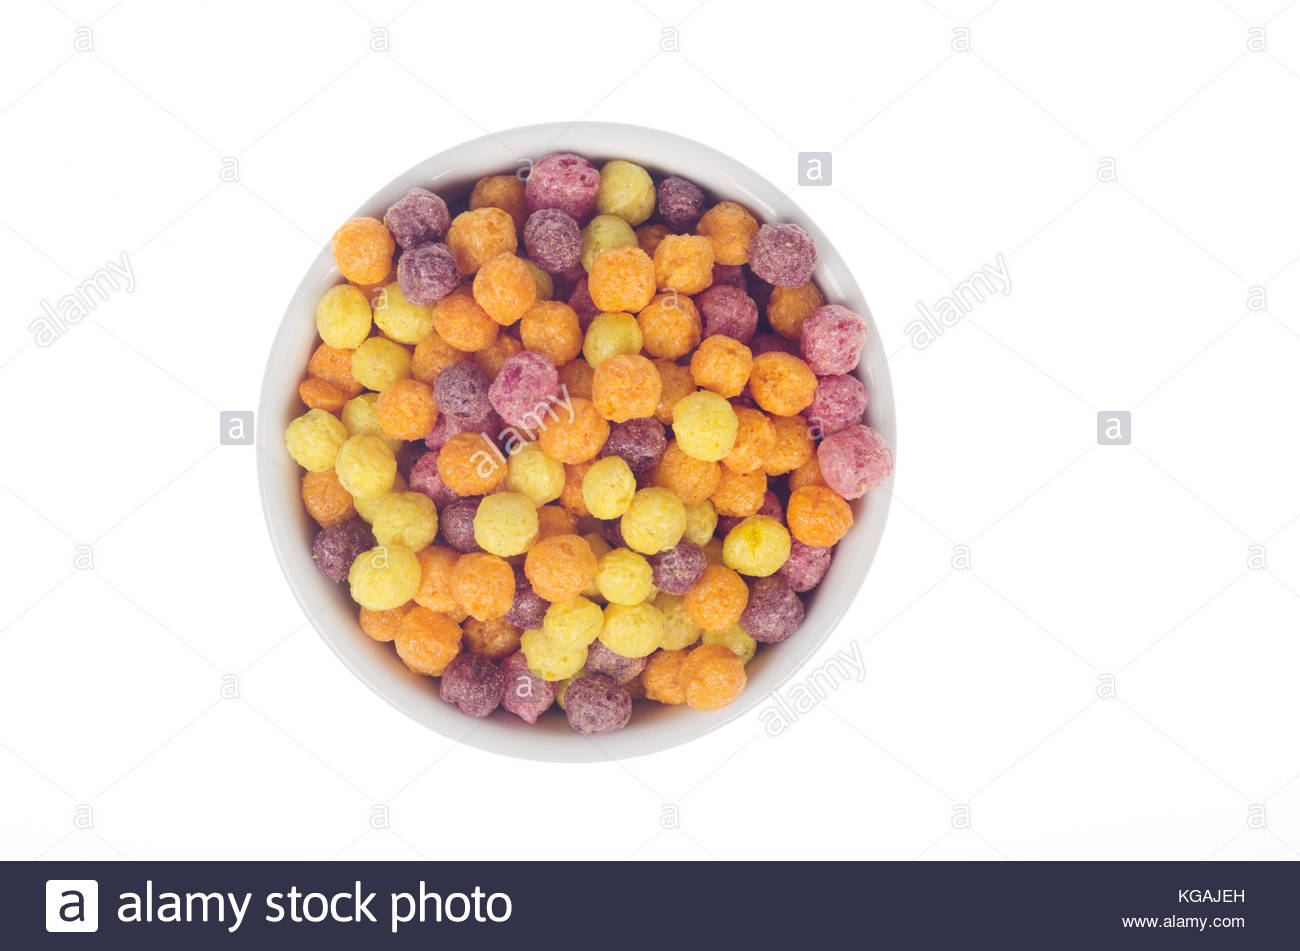 Bowl of Trix cereal by General Mills from above birds eye view on 1300x951